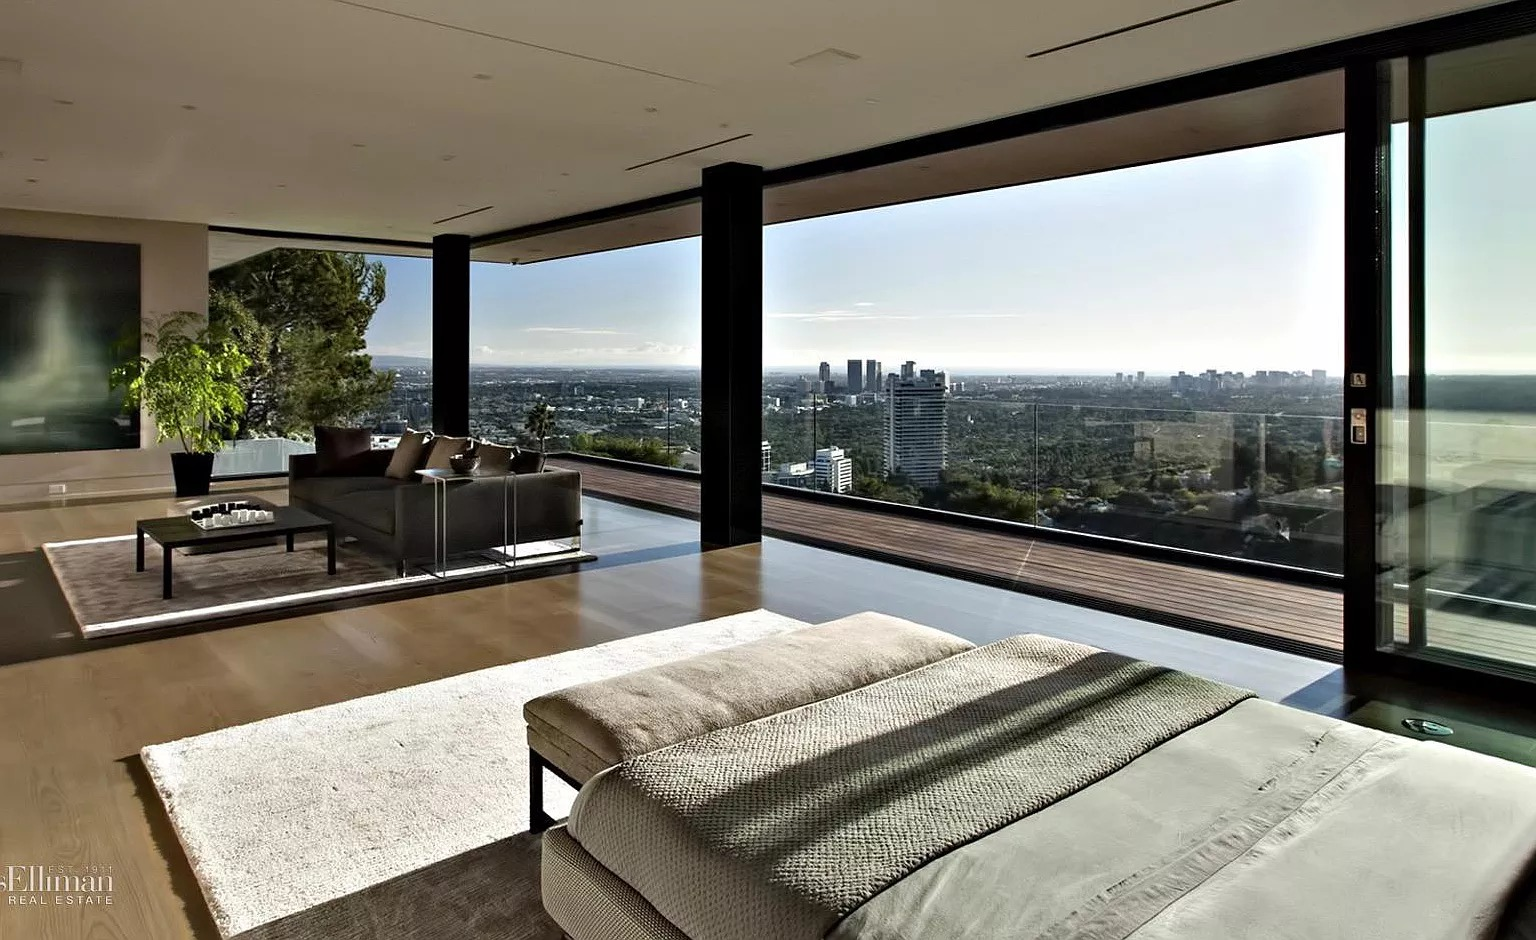 1423 Oriole Dr, Los Angeles, CA 90069 - $24,500,000 home for sale, house images, photos and pics gallery